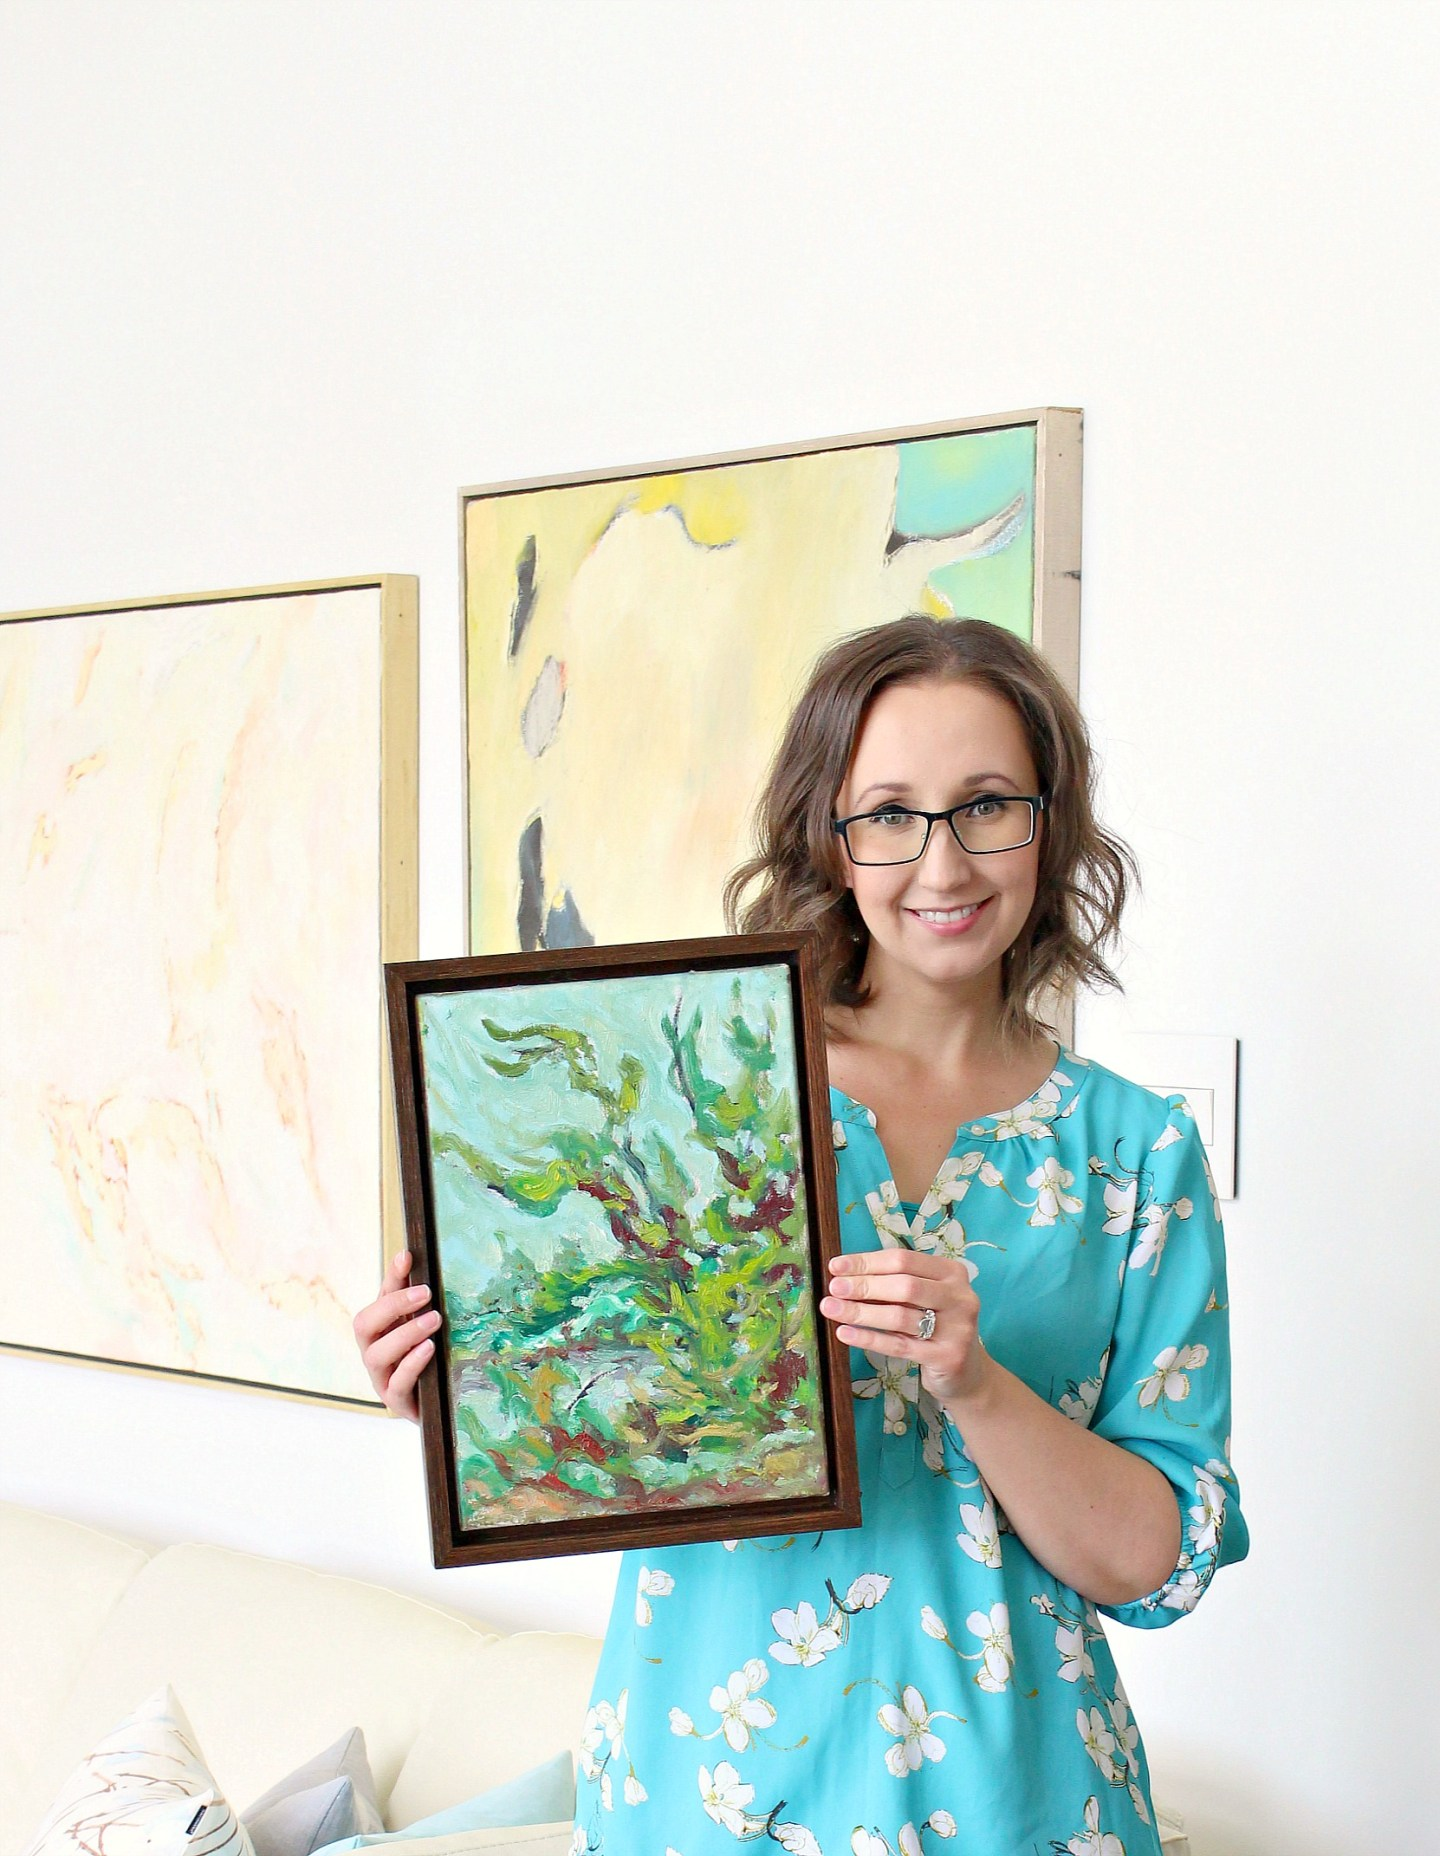 BUILD A FLOATING FRAME FOR CANVAS ART